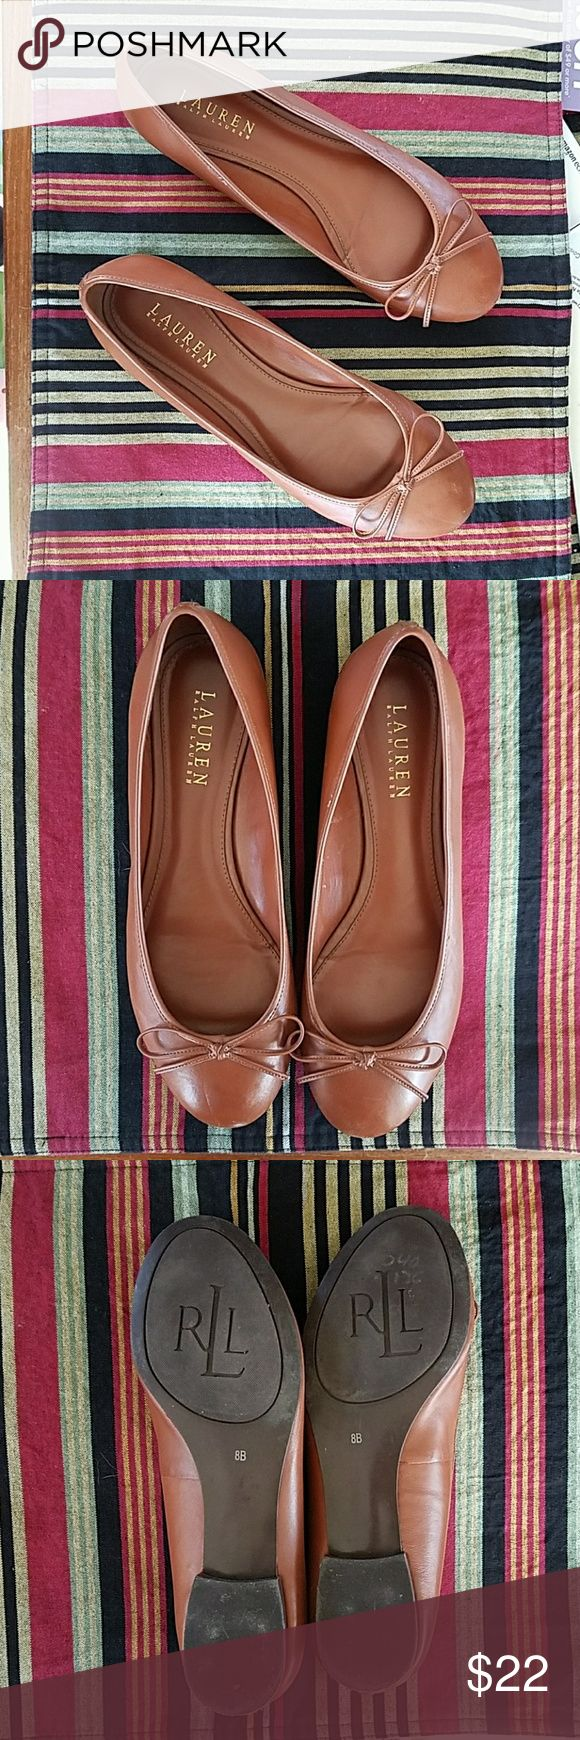 Lauren Ralph Lauren ballet  flats camel  8B These  ballet  flats are in excellent condition,  gently used.  They are very clean and show very little wear. Lauren Ralph Lauren Shoes Flats & Loafers